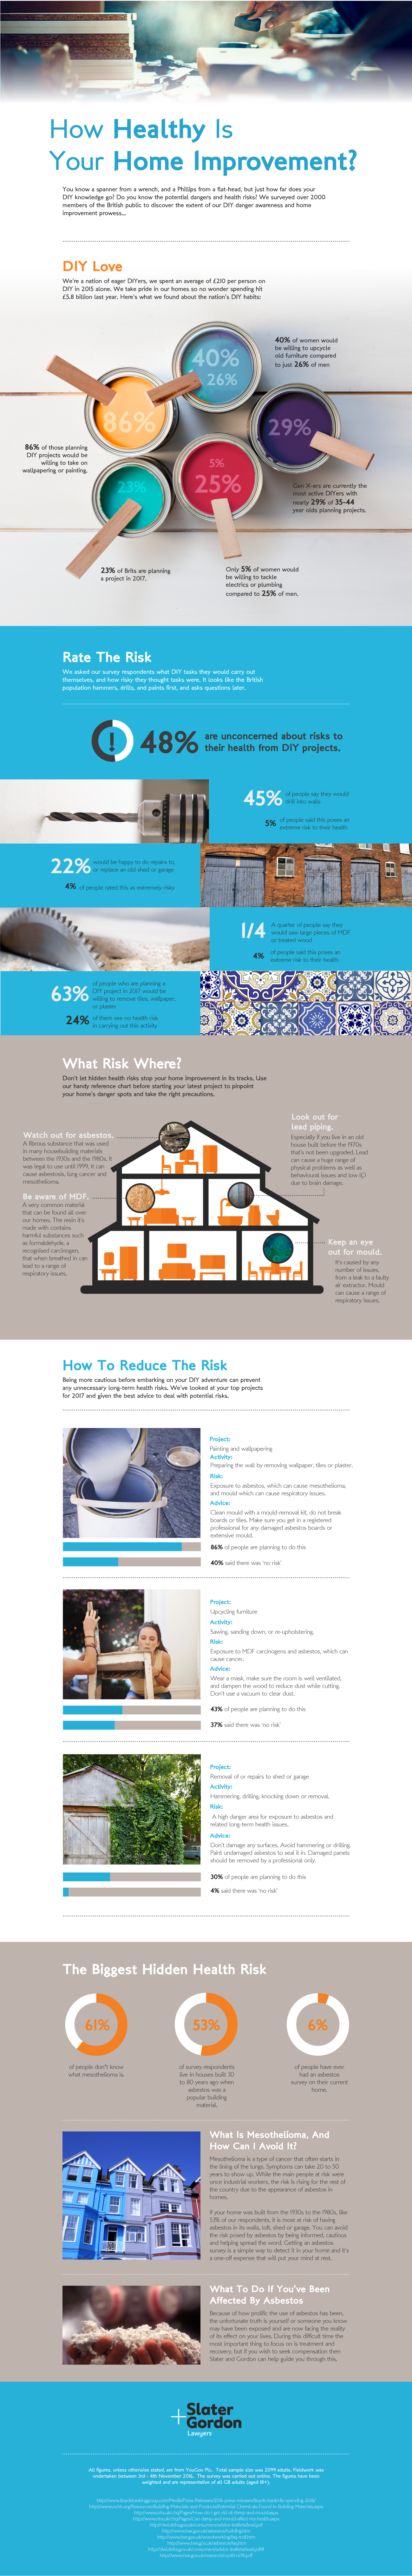 Home Improvement and Dangerous DIY Projects Infographic asbestos